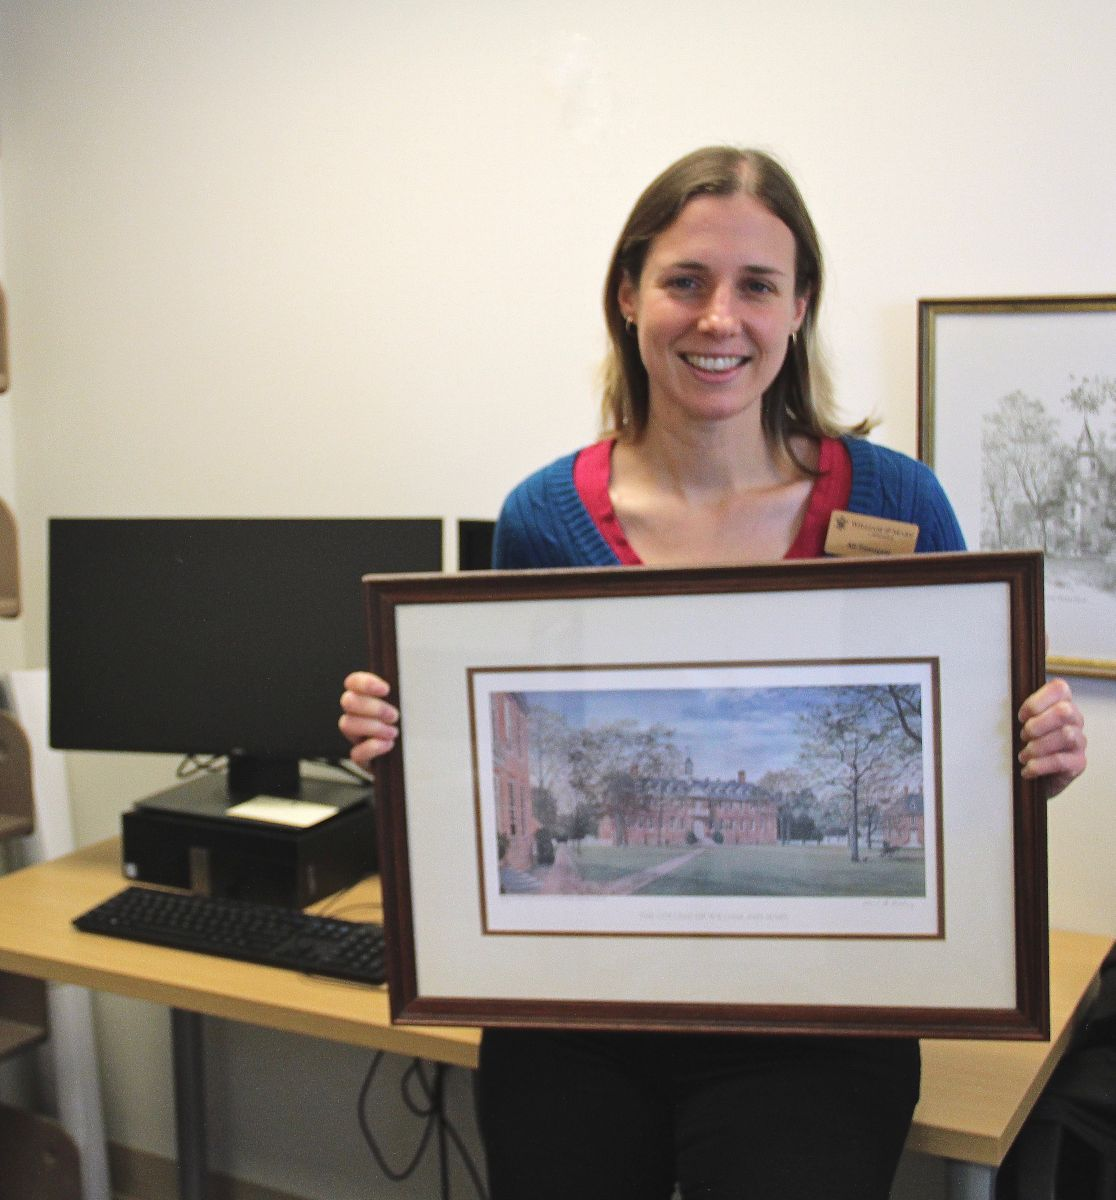 Ali Zawoyski stands and poses with a framed color print of the Wren Building.